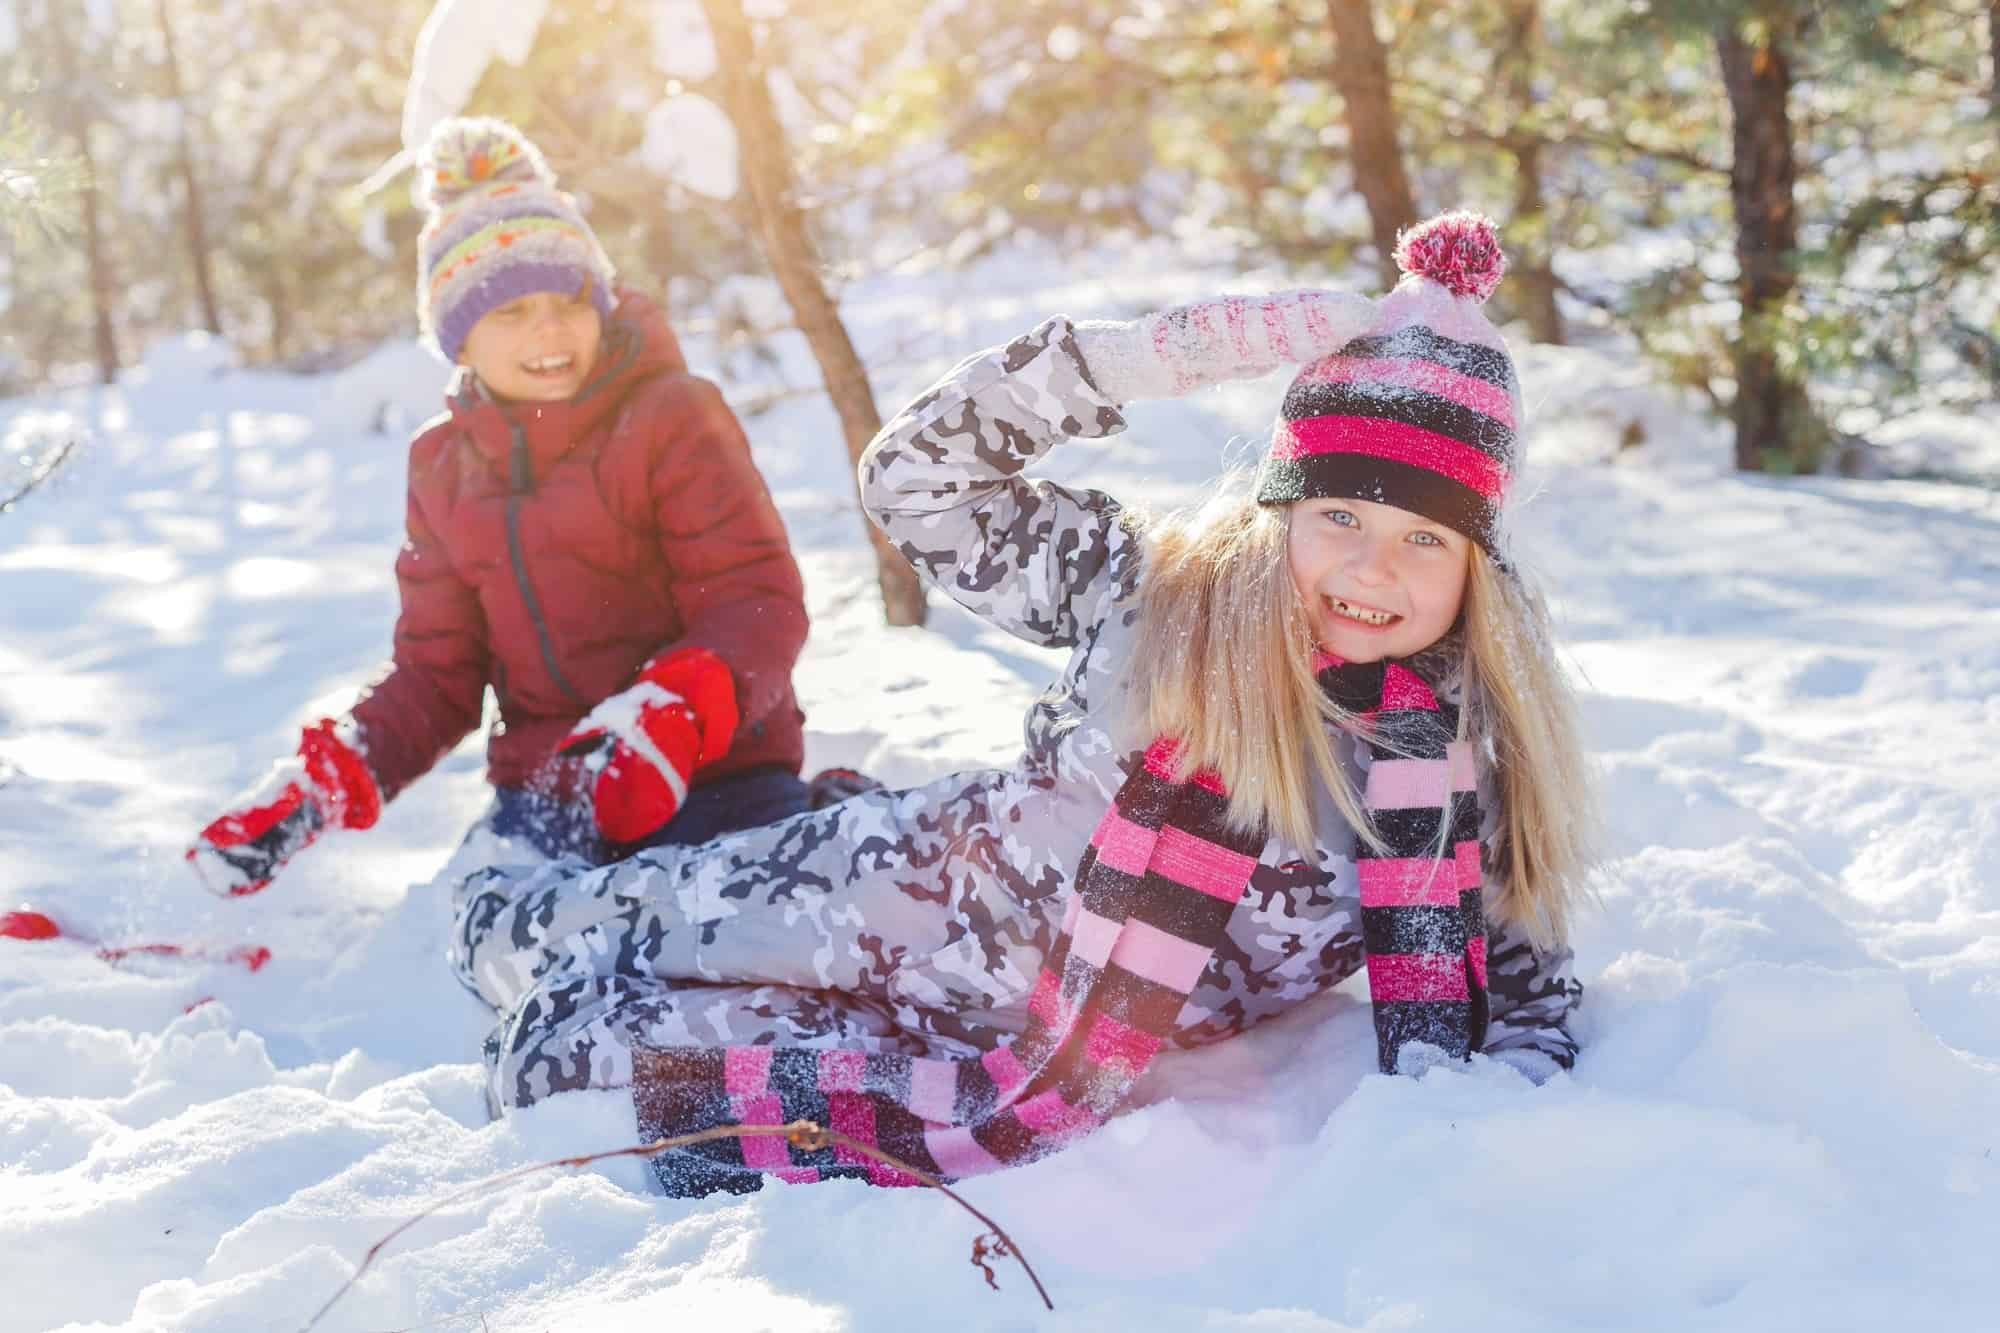 Snow Play Activities that Kids Love